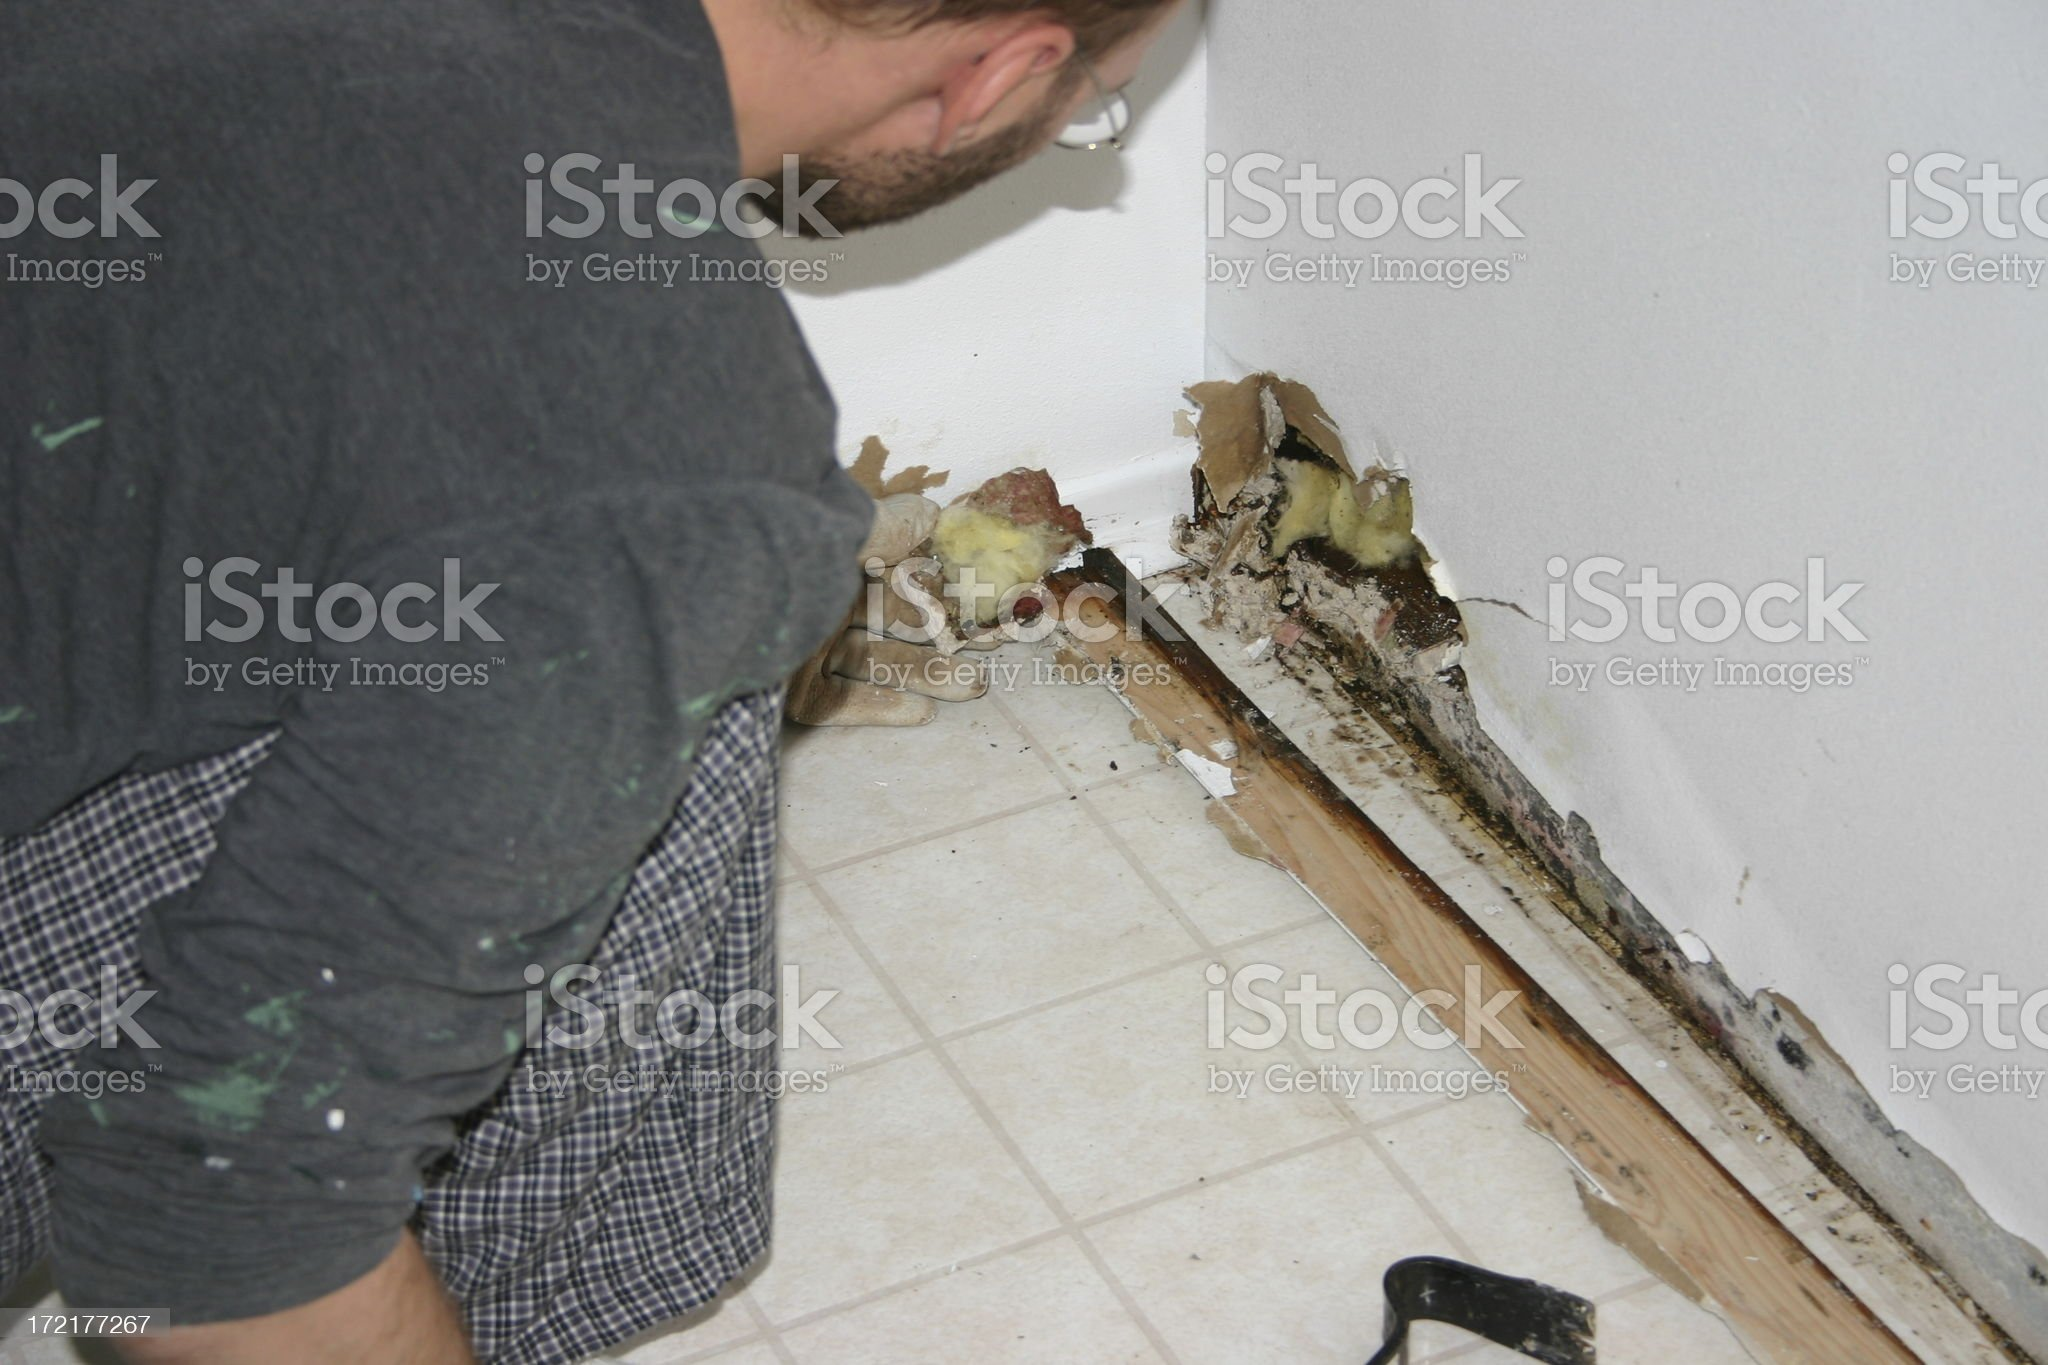 water damage #2 royalty-free stock photo